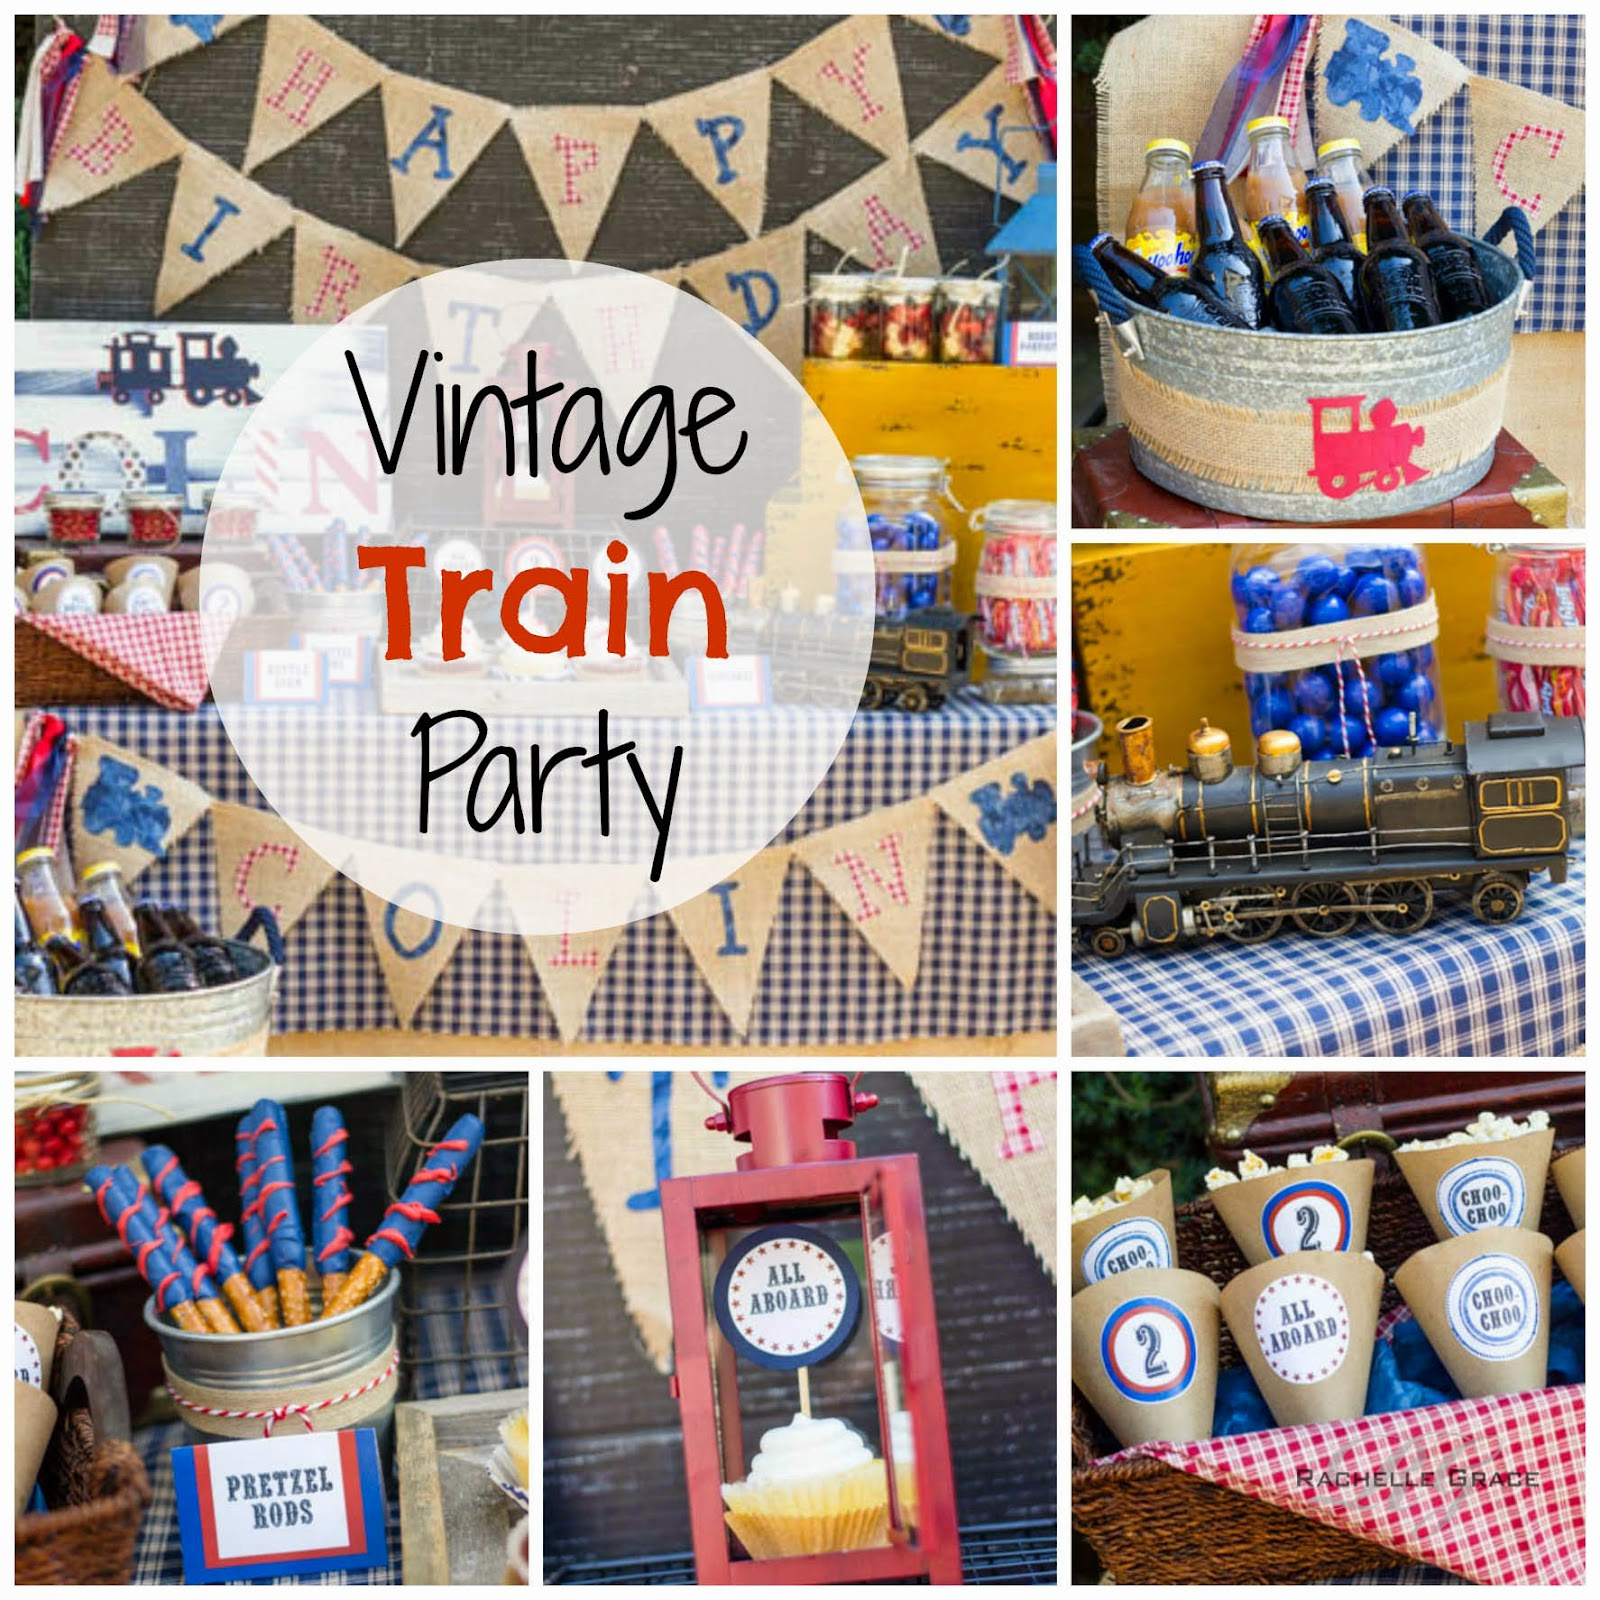 Vintage Train Party Inspiration Trying To Come Up With Ideas For Your Kiddos Next Birthday Think Choo Trains My Little Ones Love Anything That Is